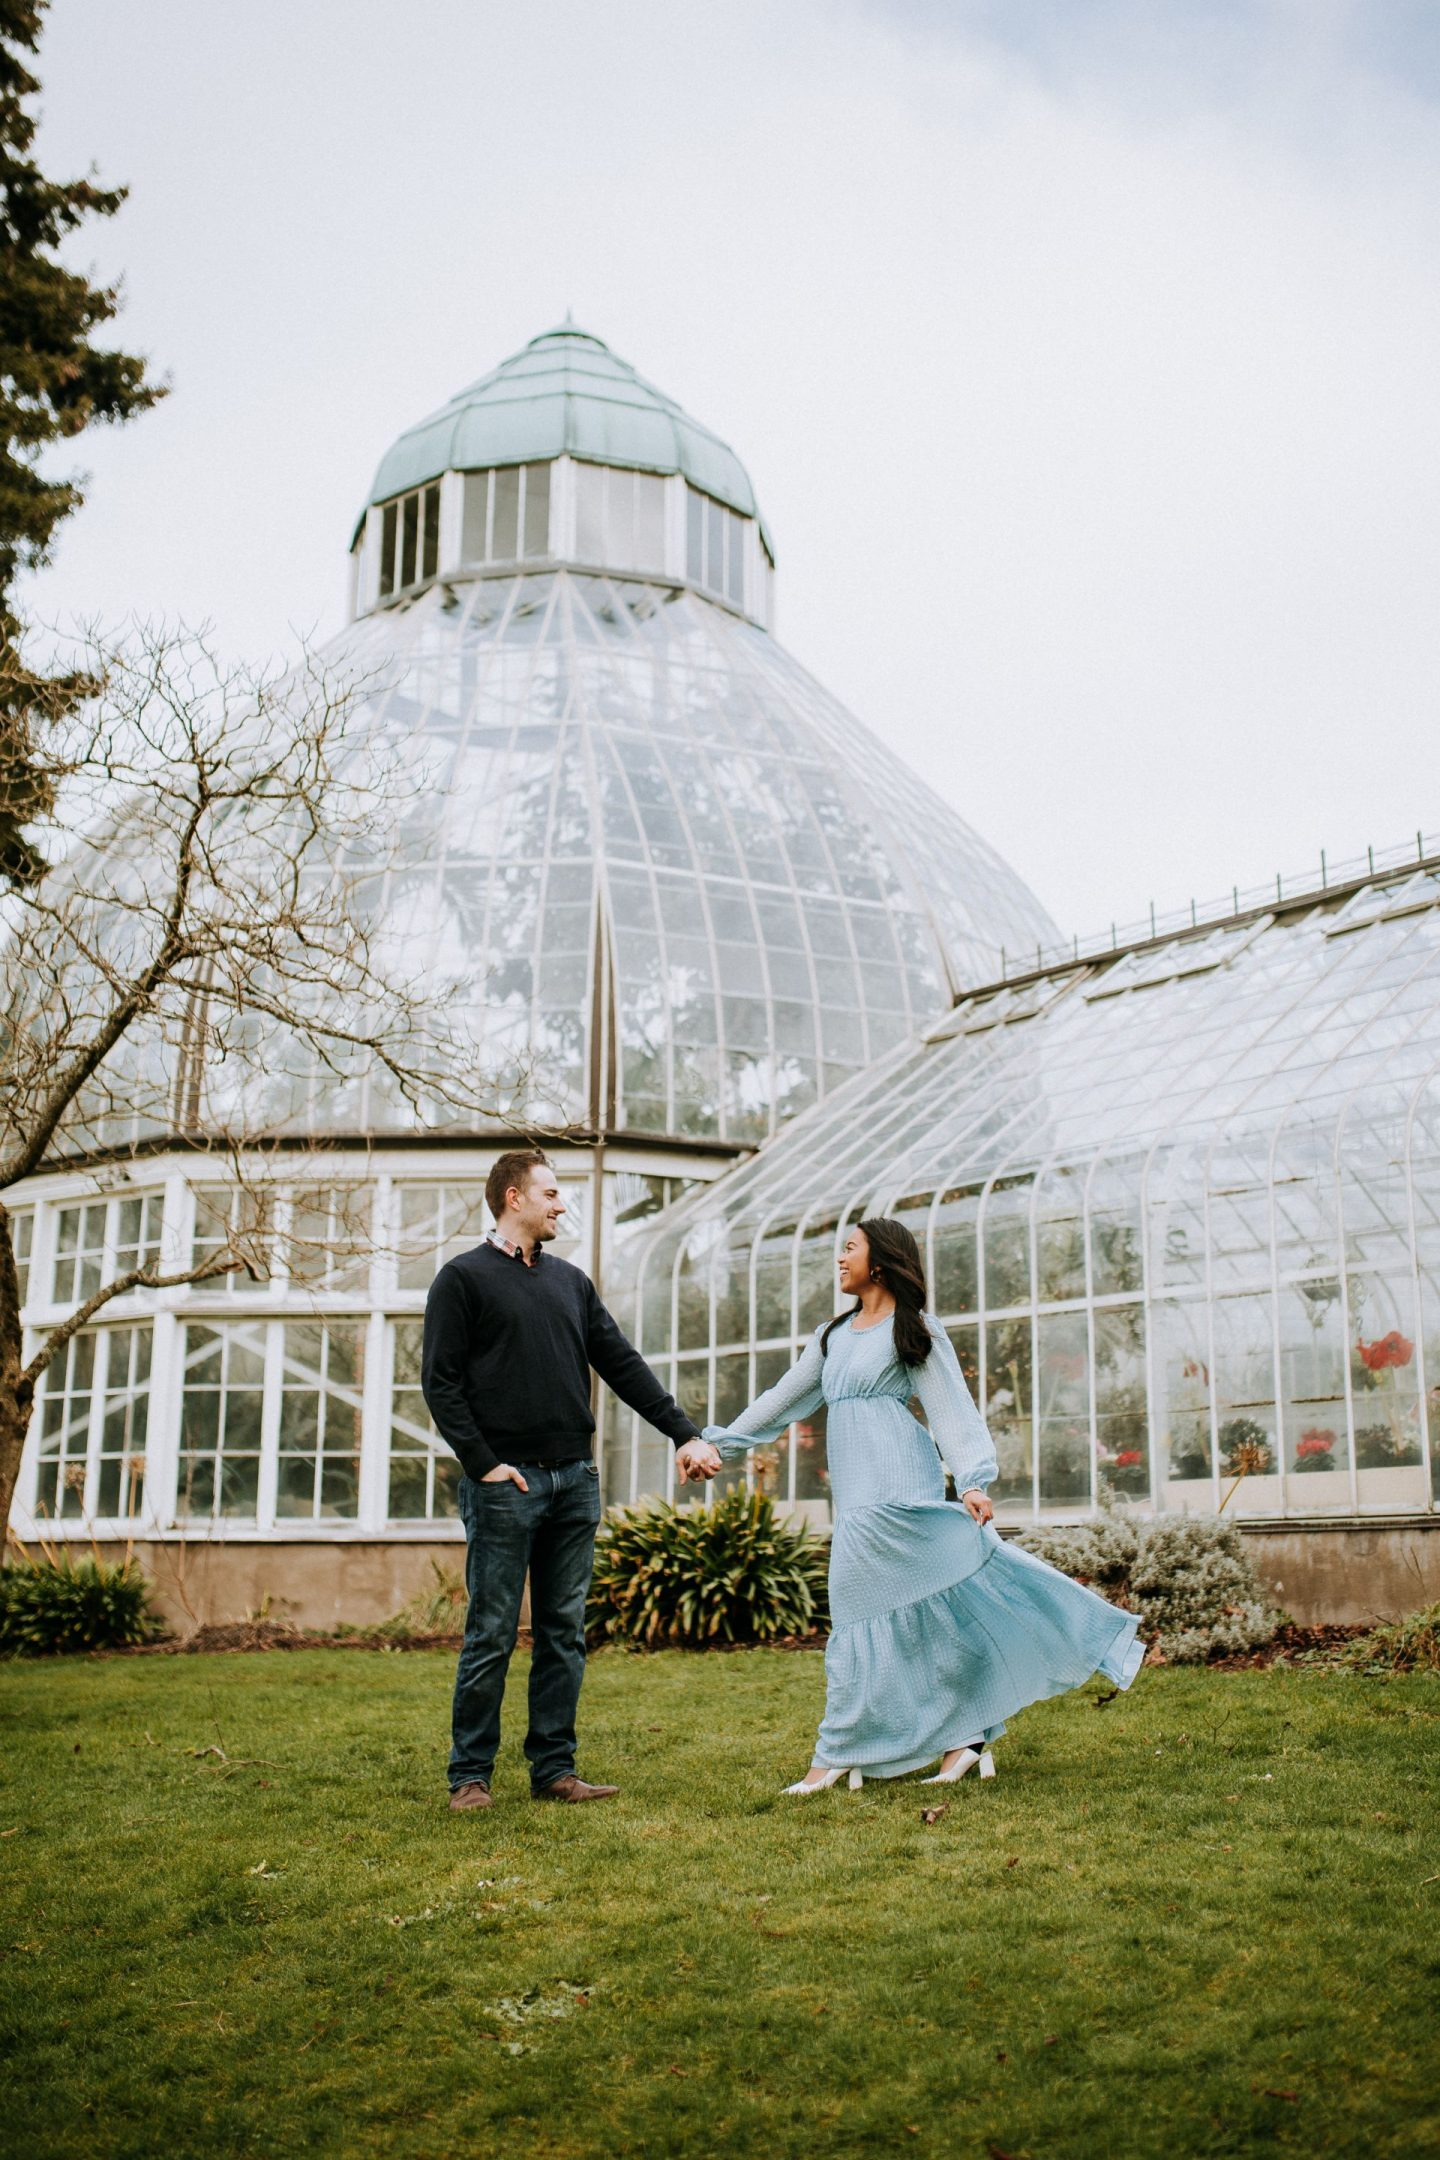 February Wedding Update: Save the Dates, Wedding Dress Shopping & More!